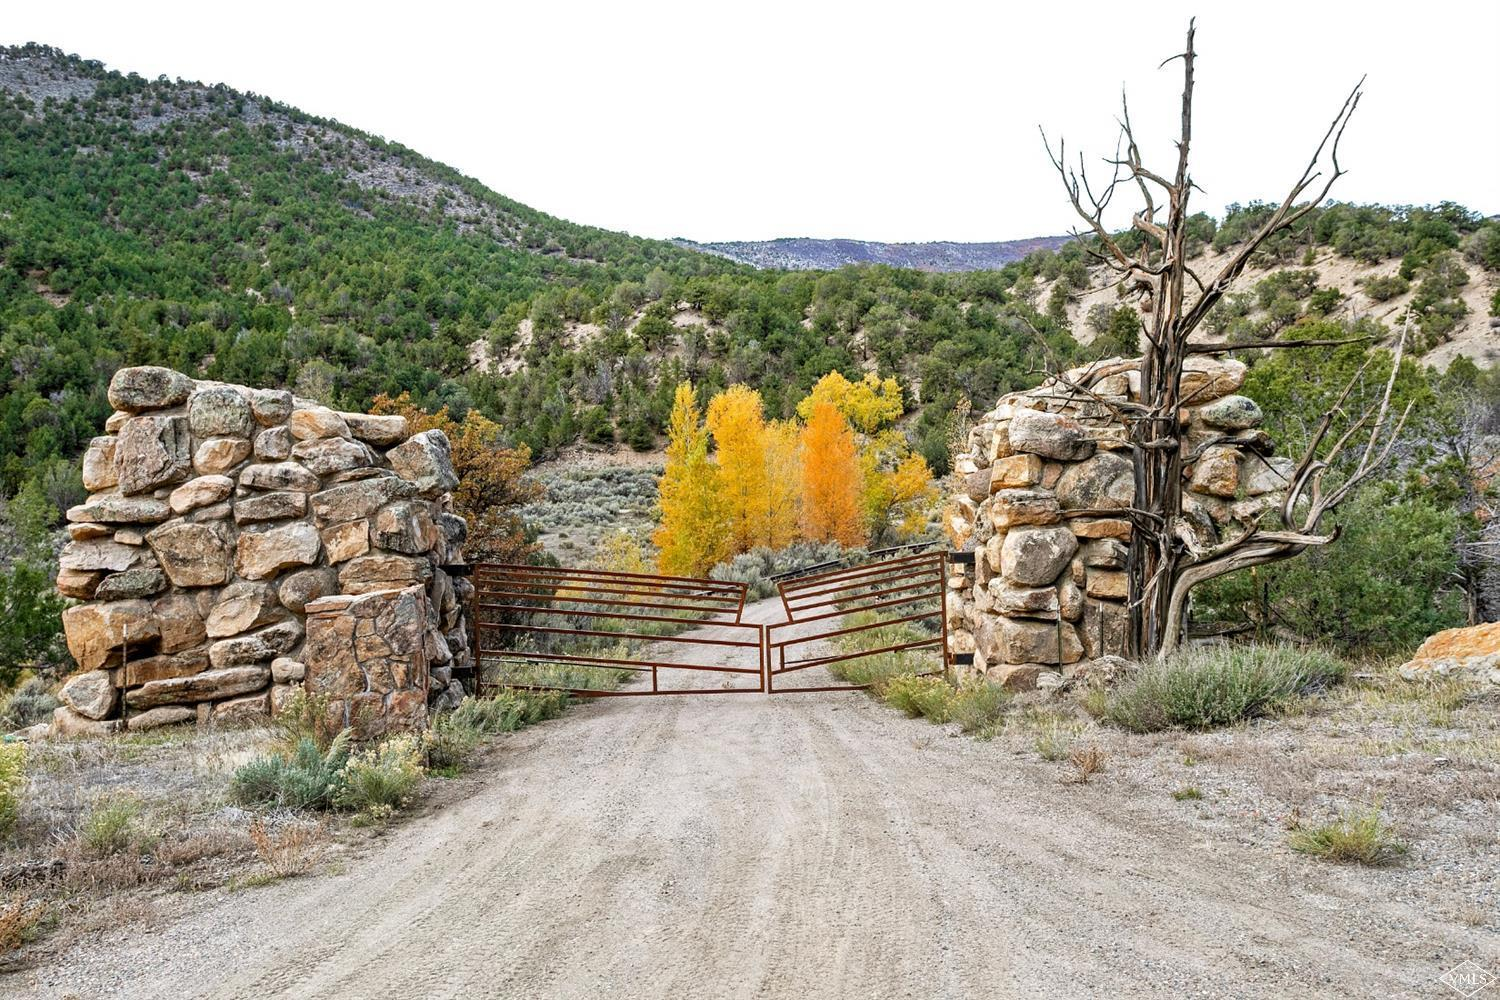 2742 Sweetwater Road, 11, Gypsum, CO 81637 Property Photo - Gypsum, CO real estate listing